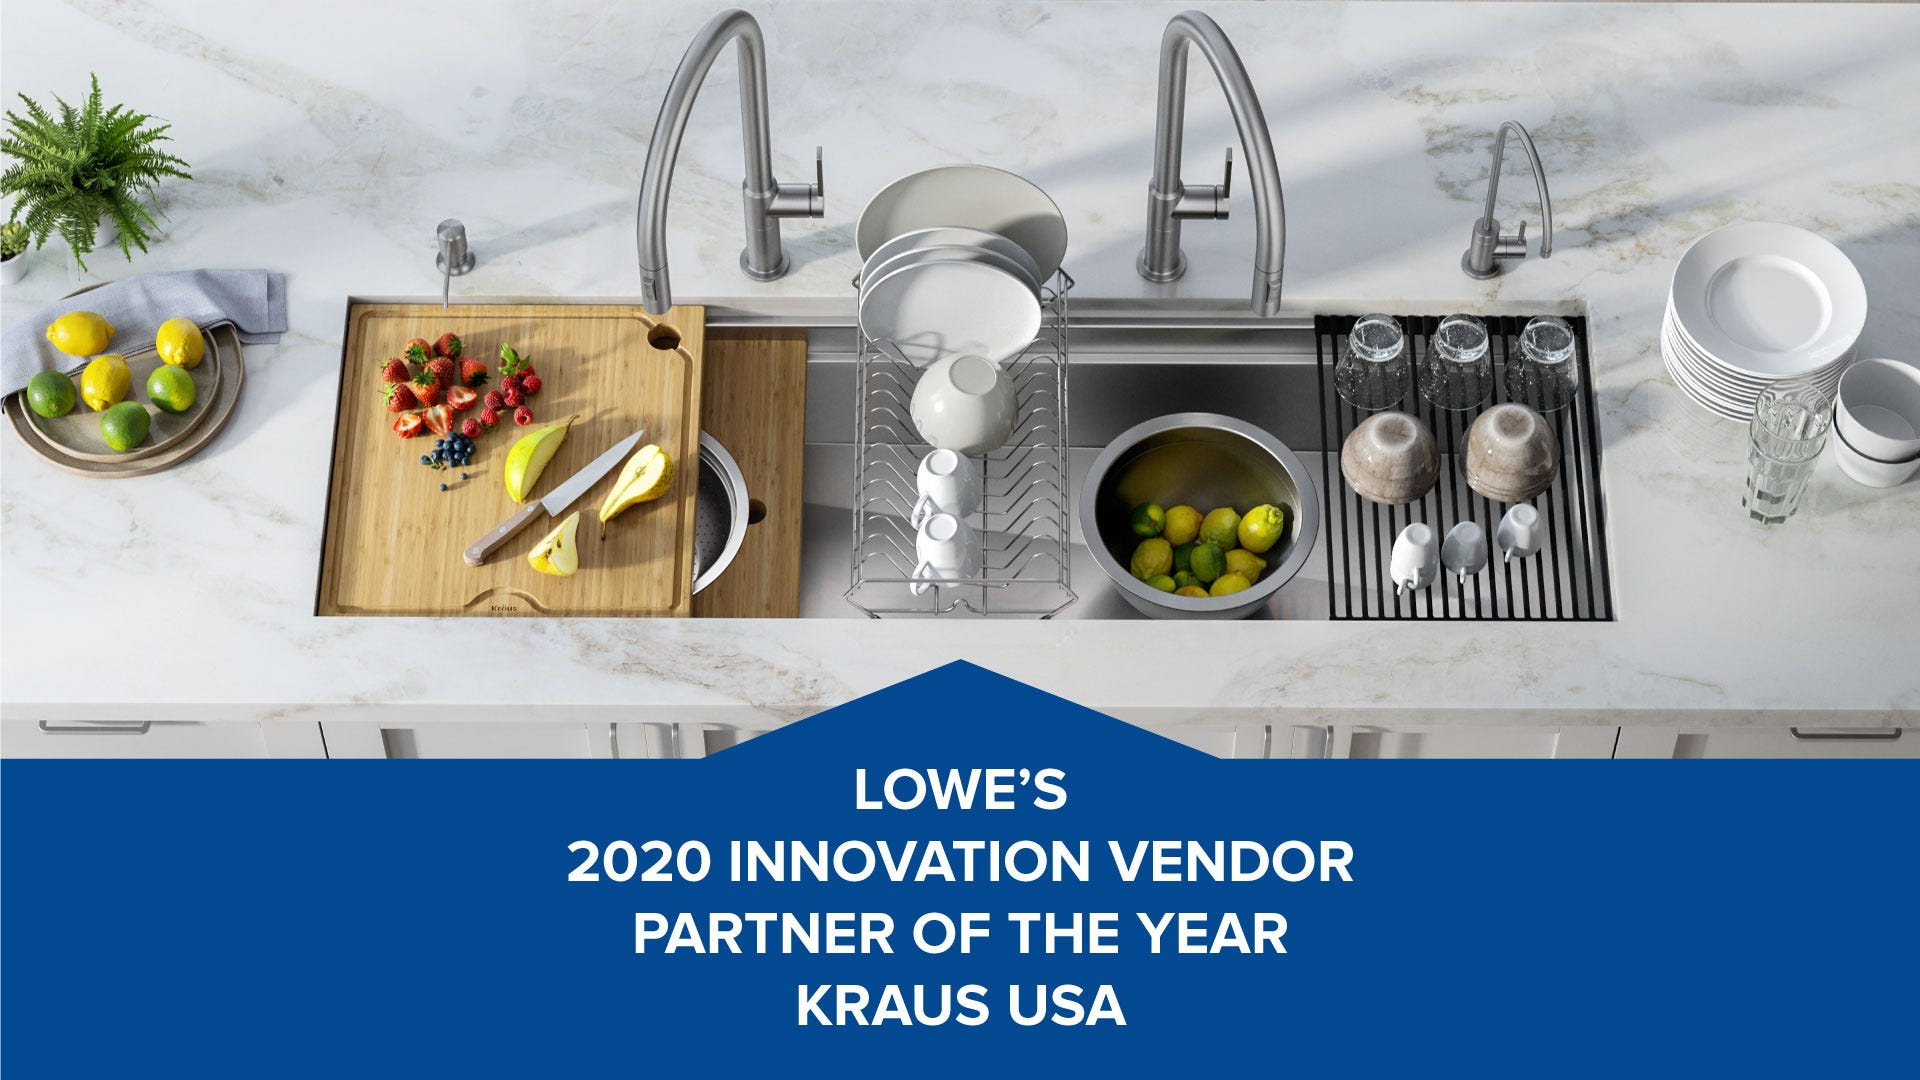 Kraus-Lowes-Kore-sink-Oletto-faucets